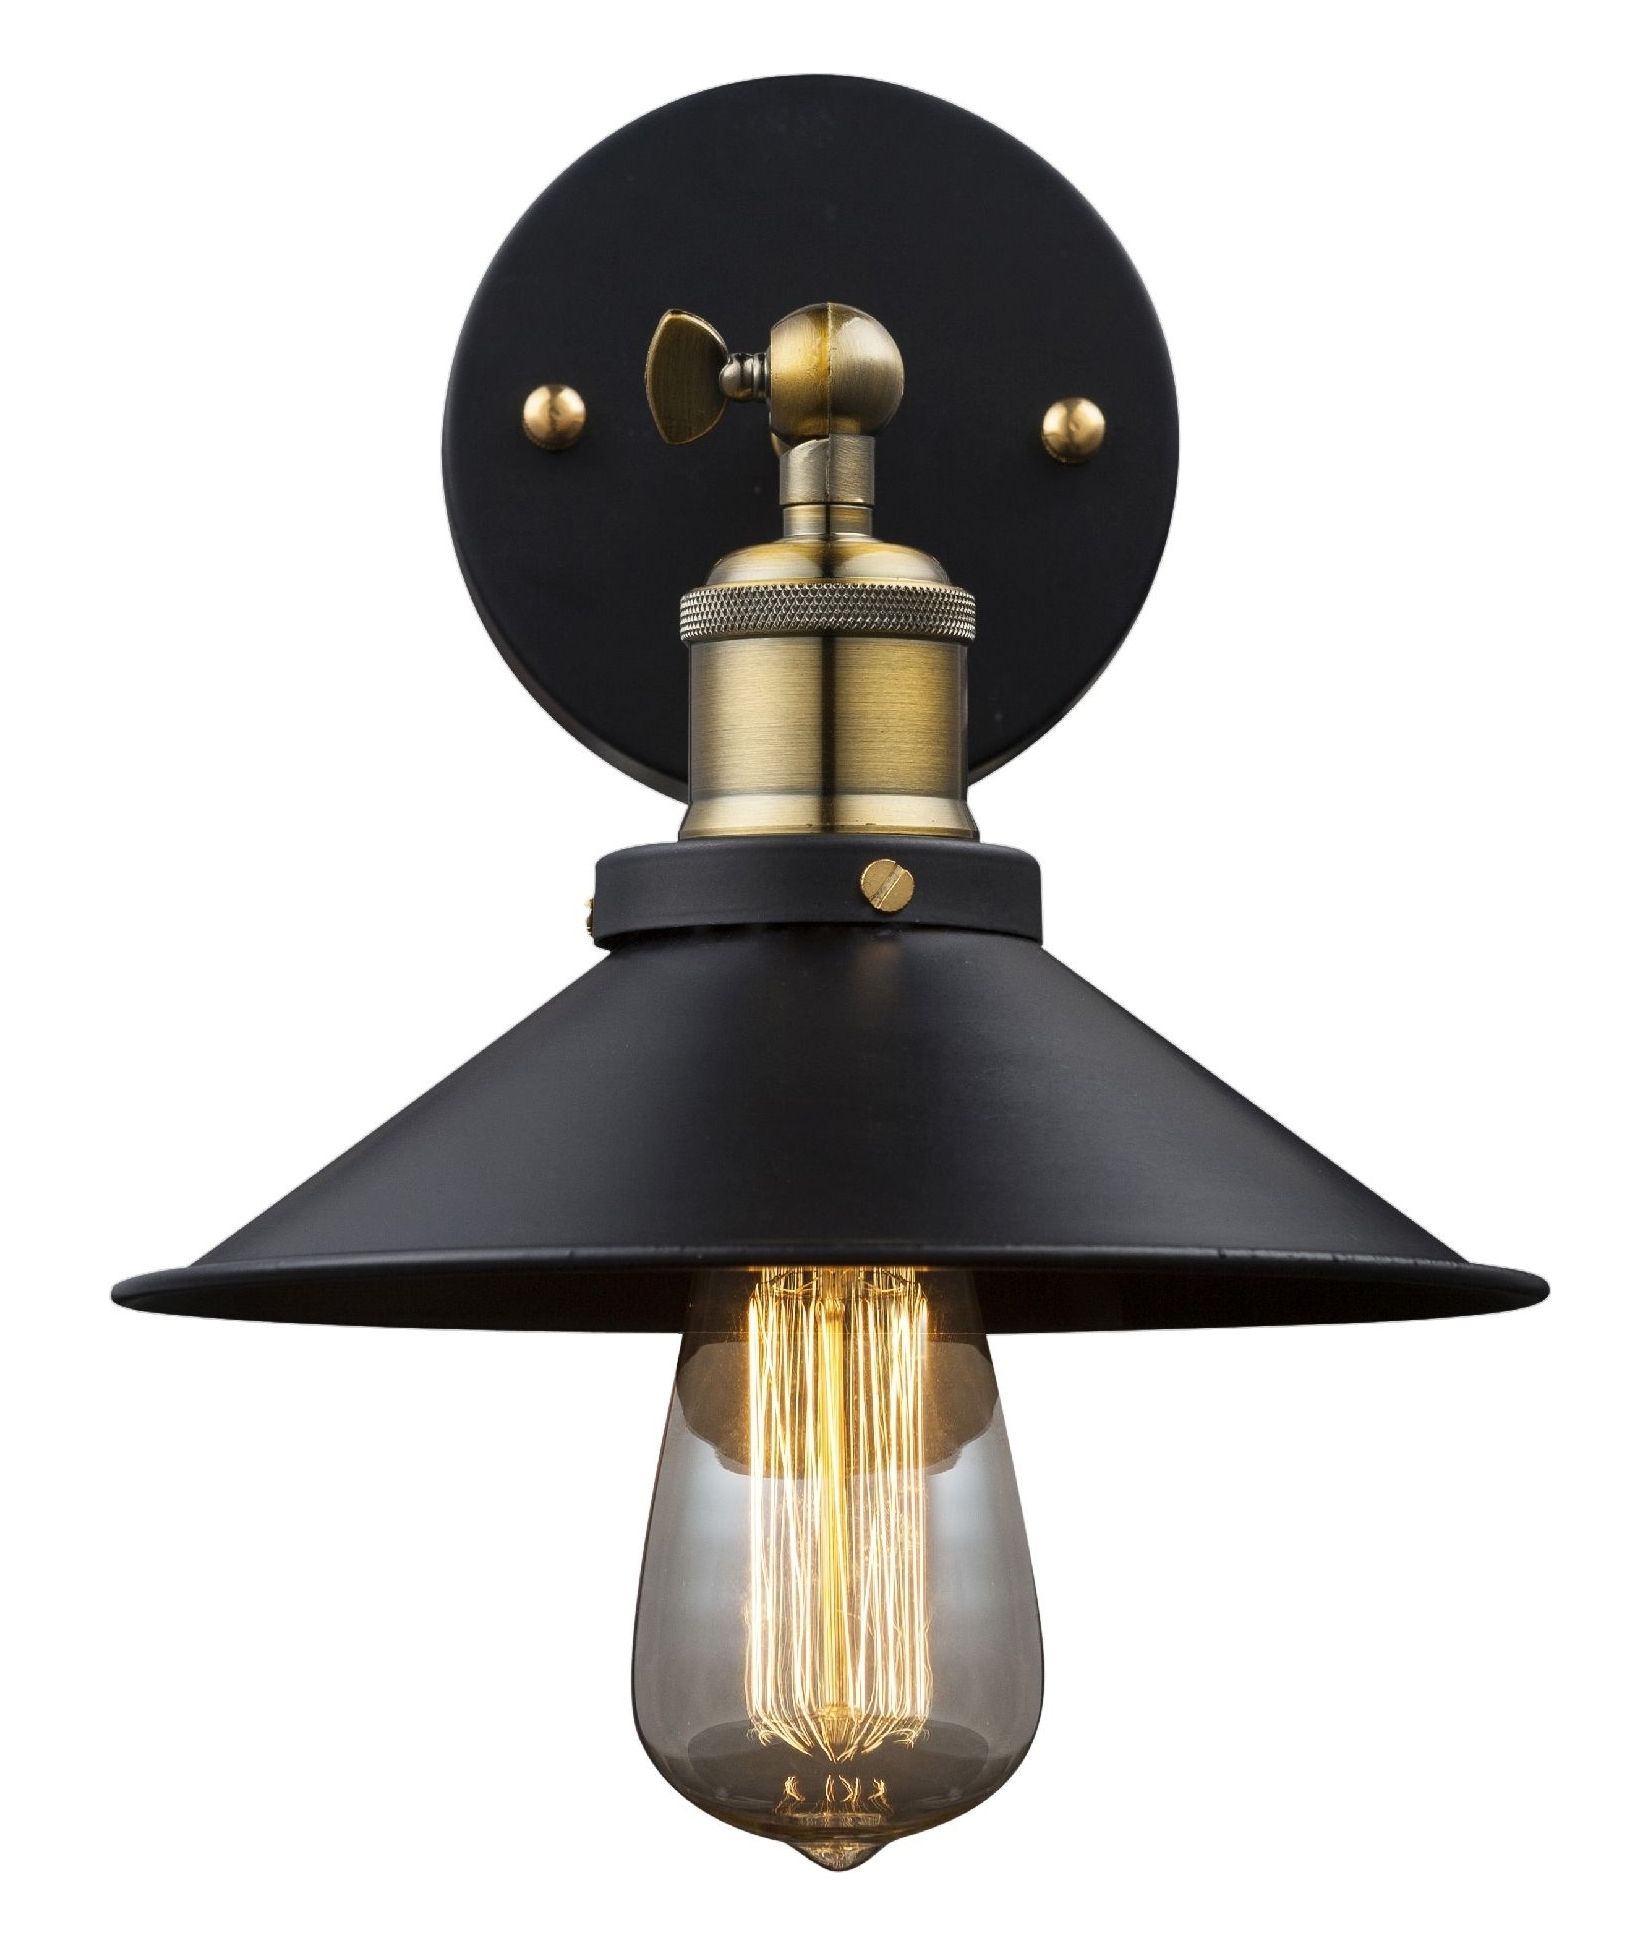 Railway Pioneer Style Metal Wall Light Black With